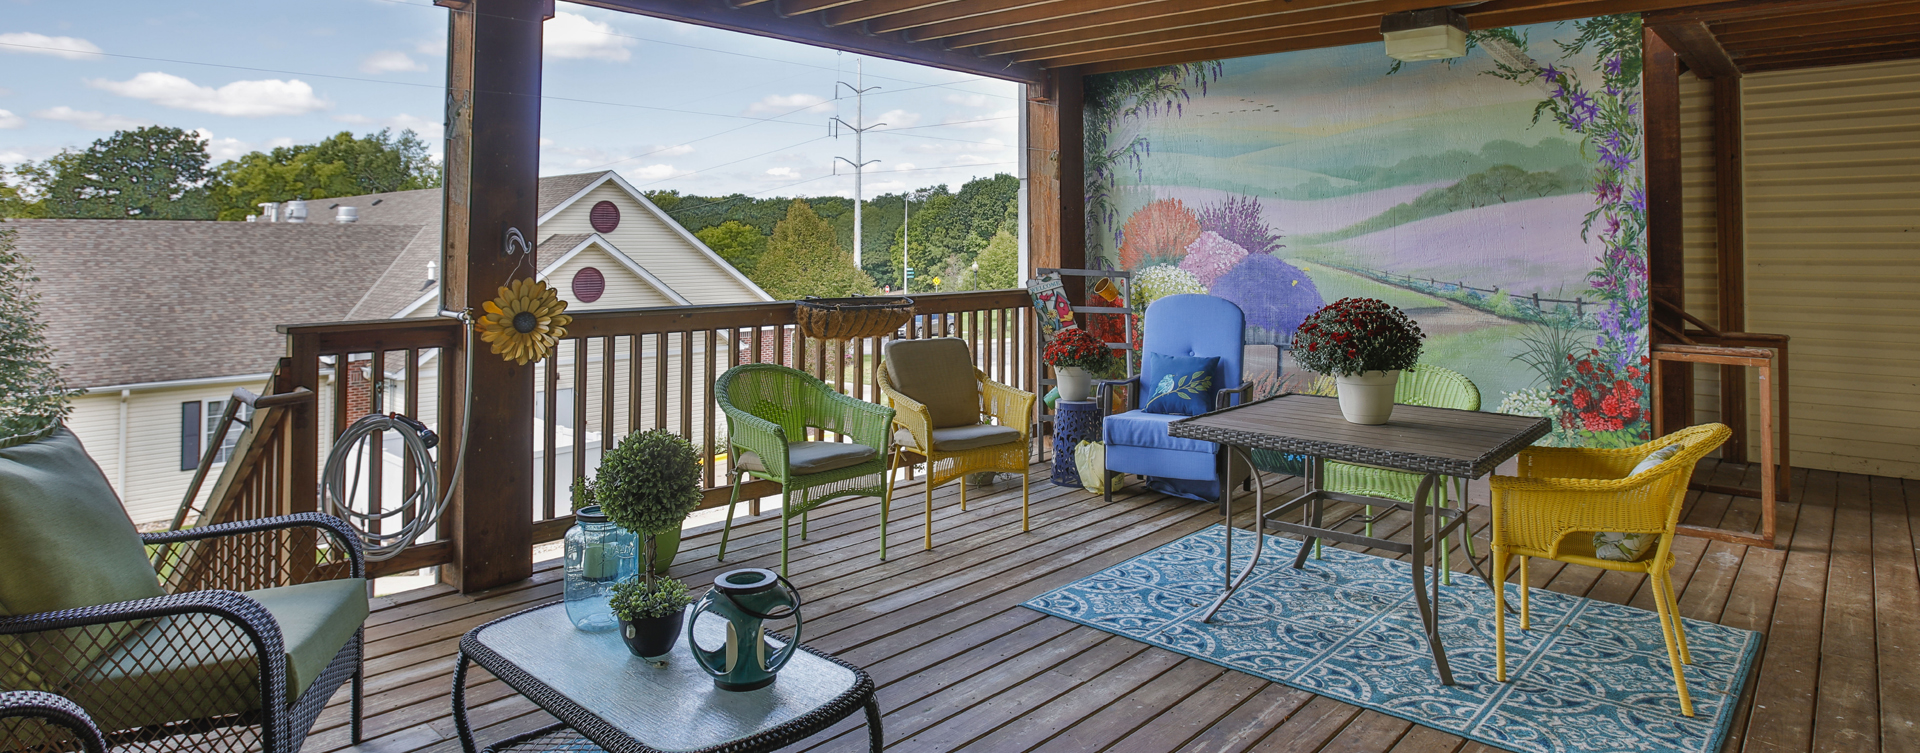 Enjoy the outdoors in a whole new light by stepping onto our back deck at Bickford of Peoria